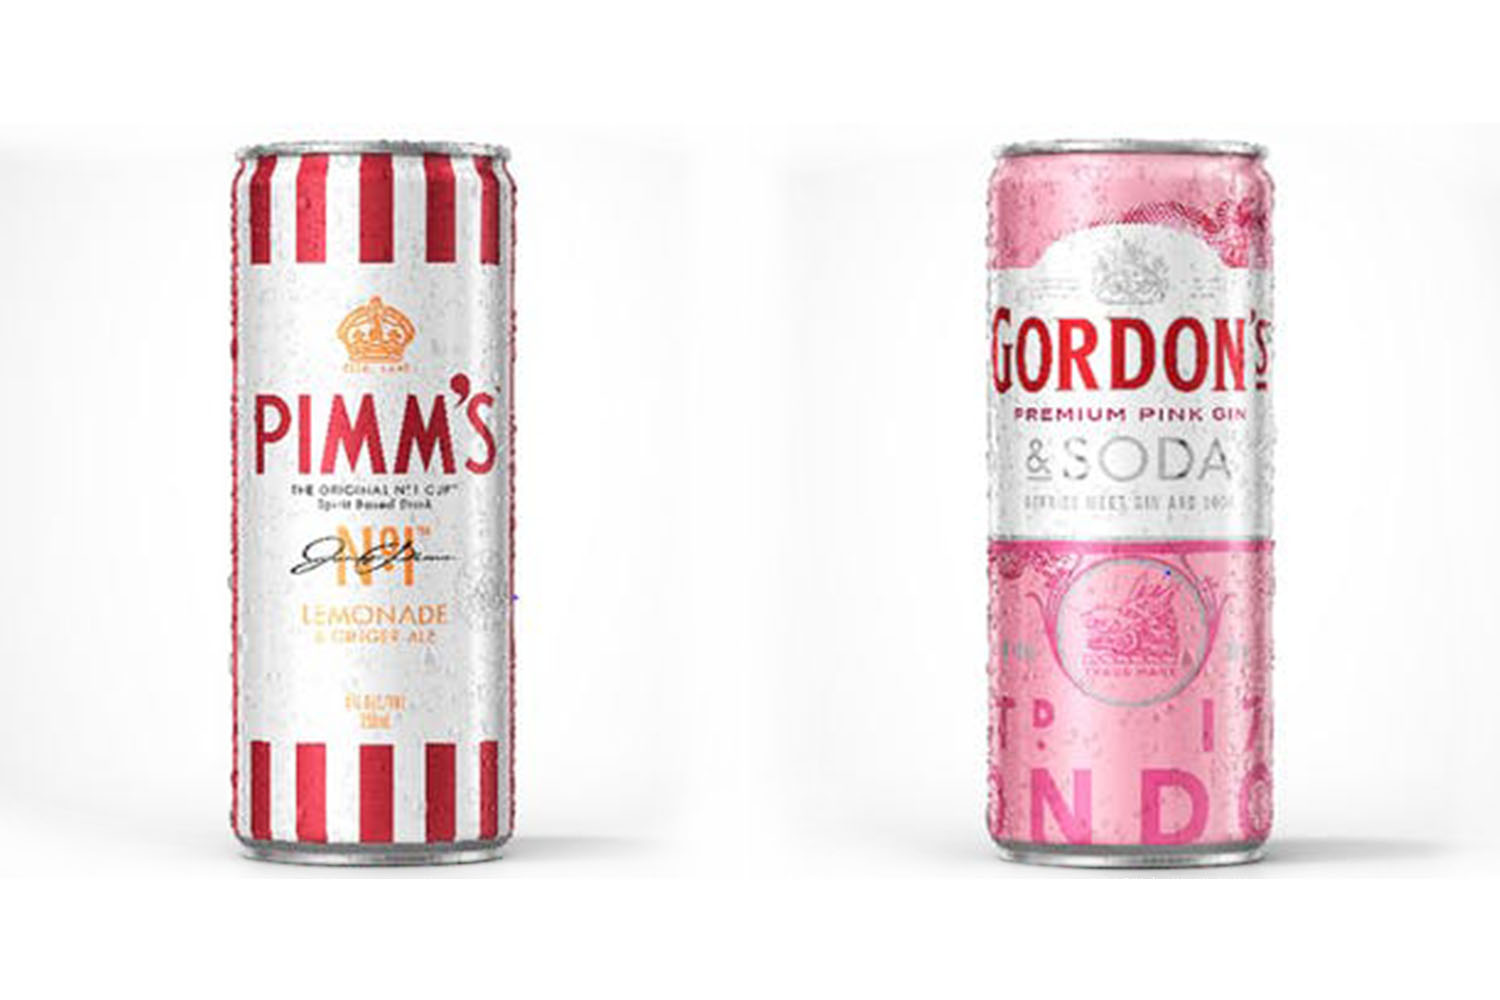 You Can Now Buy Pimm?s And Gordon?s Pink Gin In Handy Cans photo